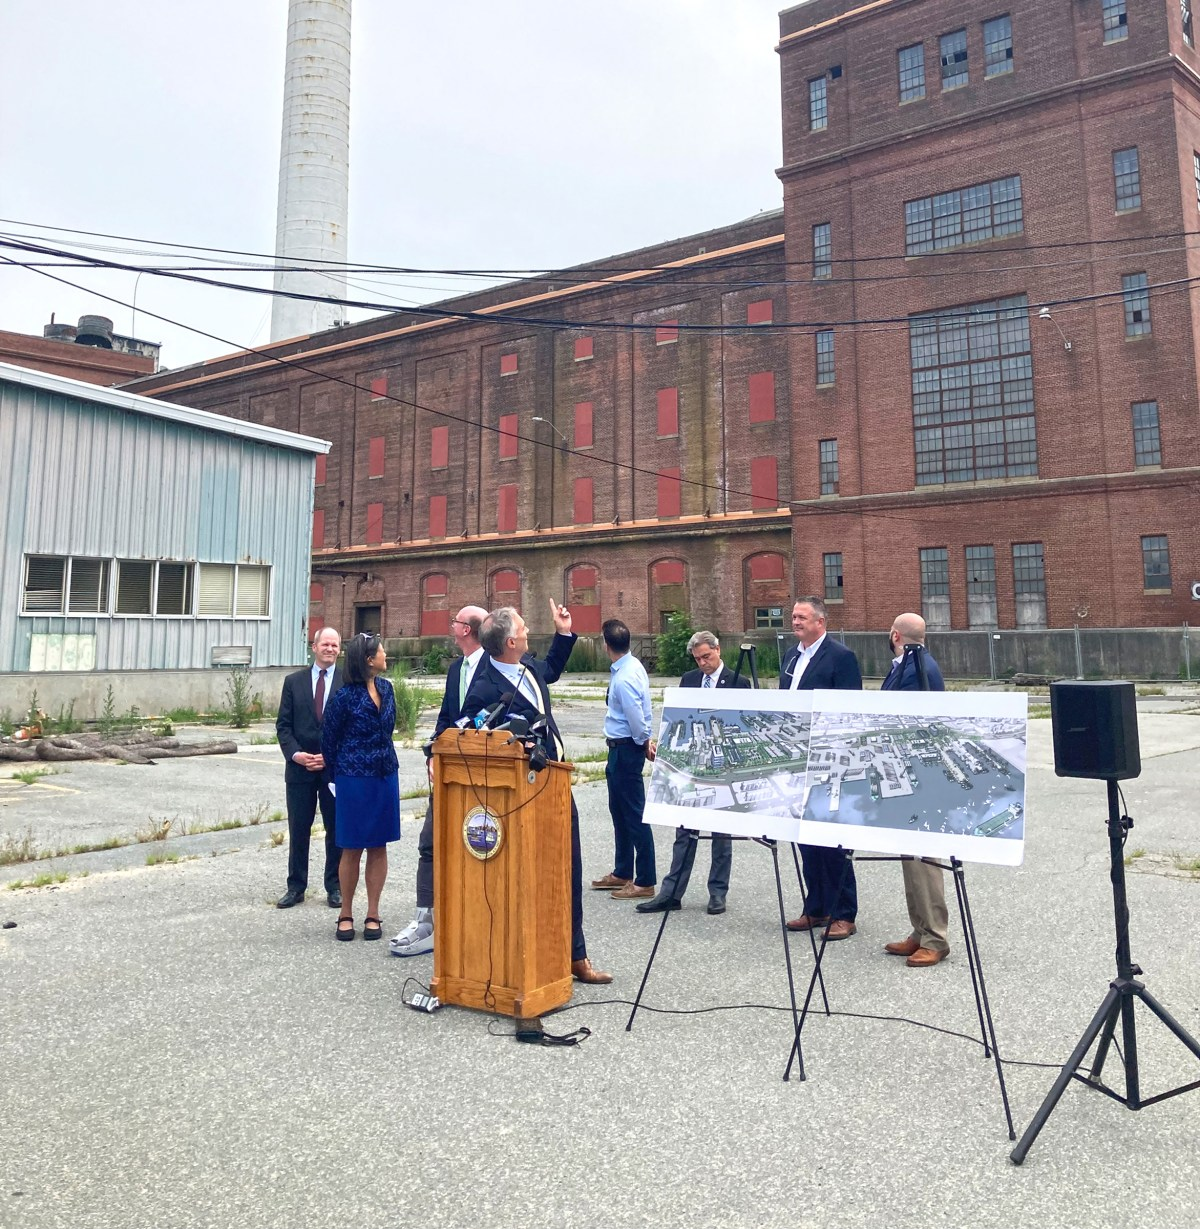 Mayoral press conference at Cannon Street Power Station.